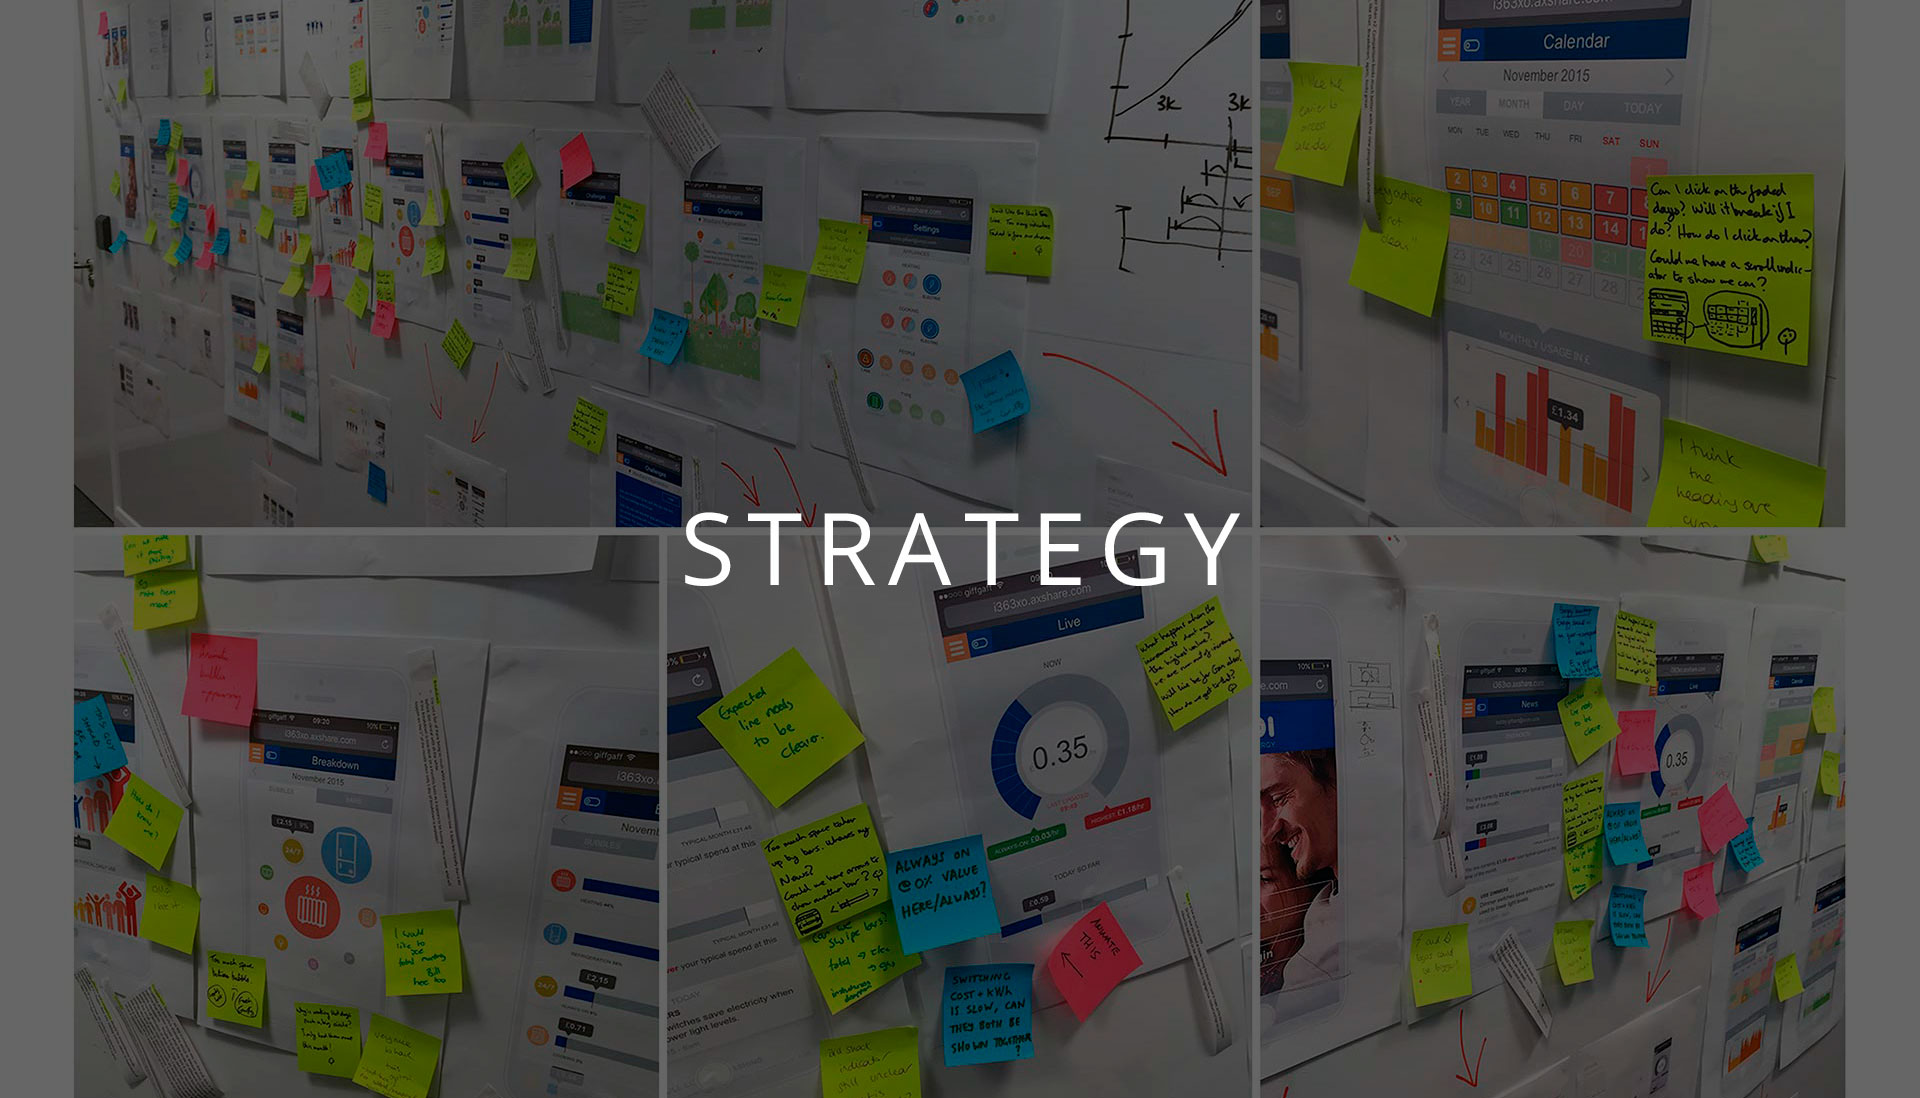 02 Strategy: brainstorming session